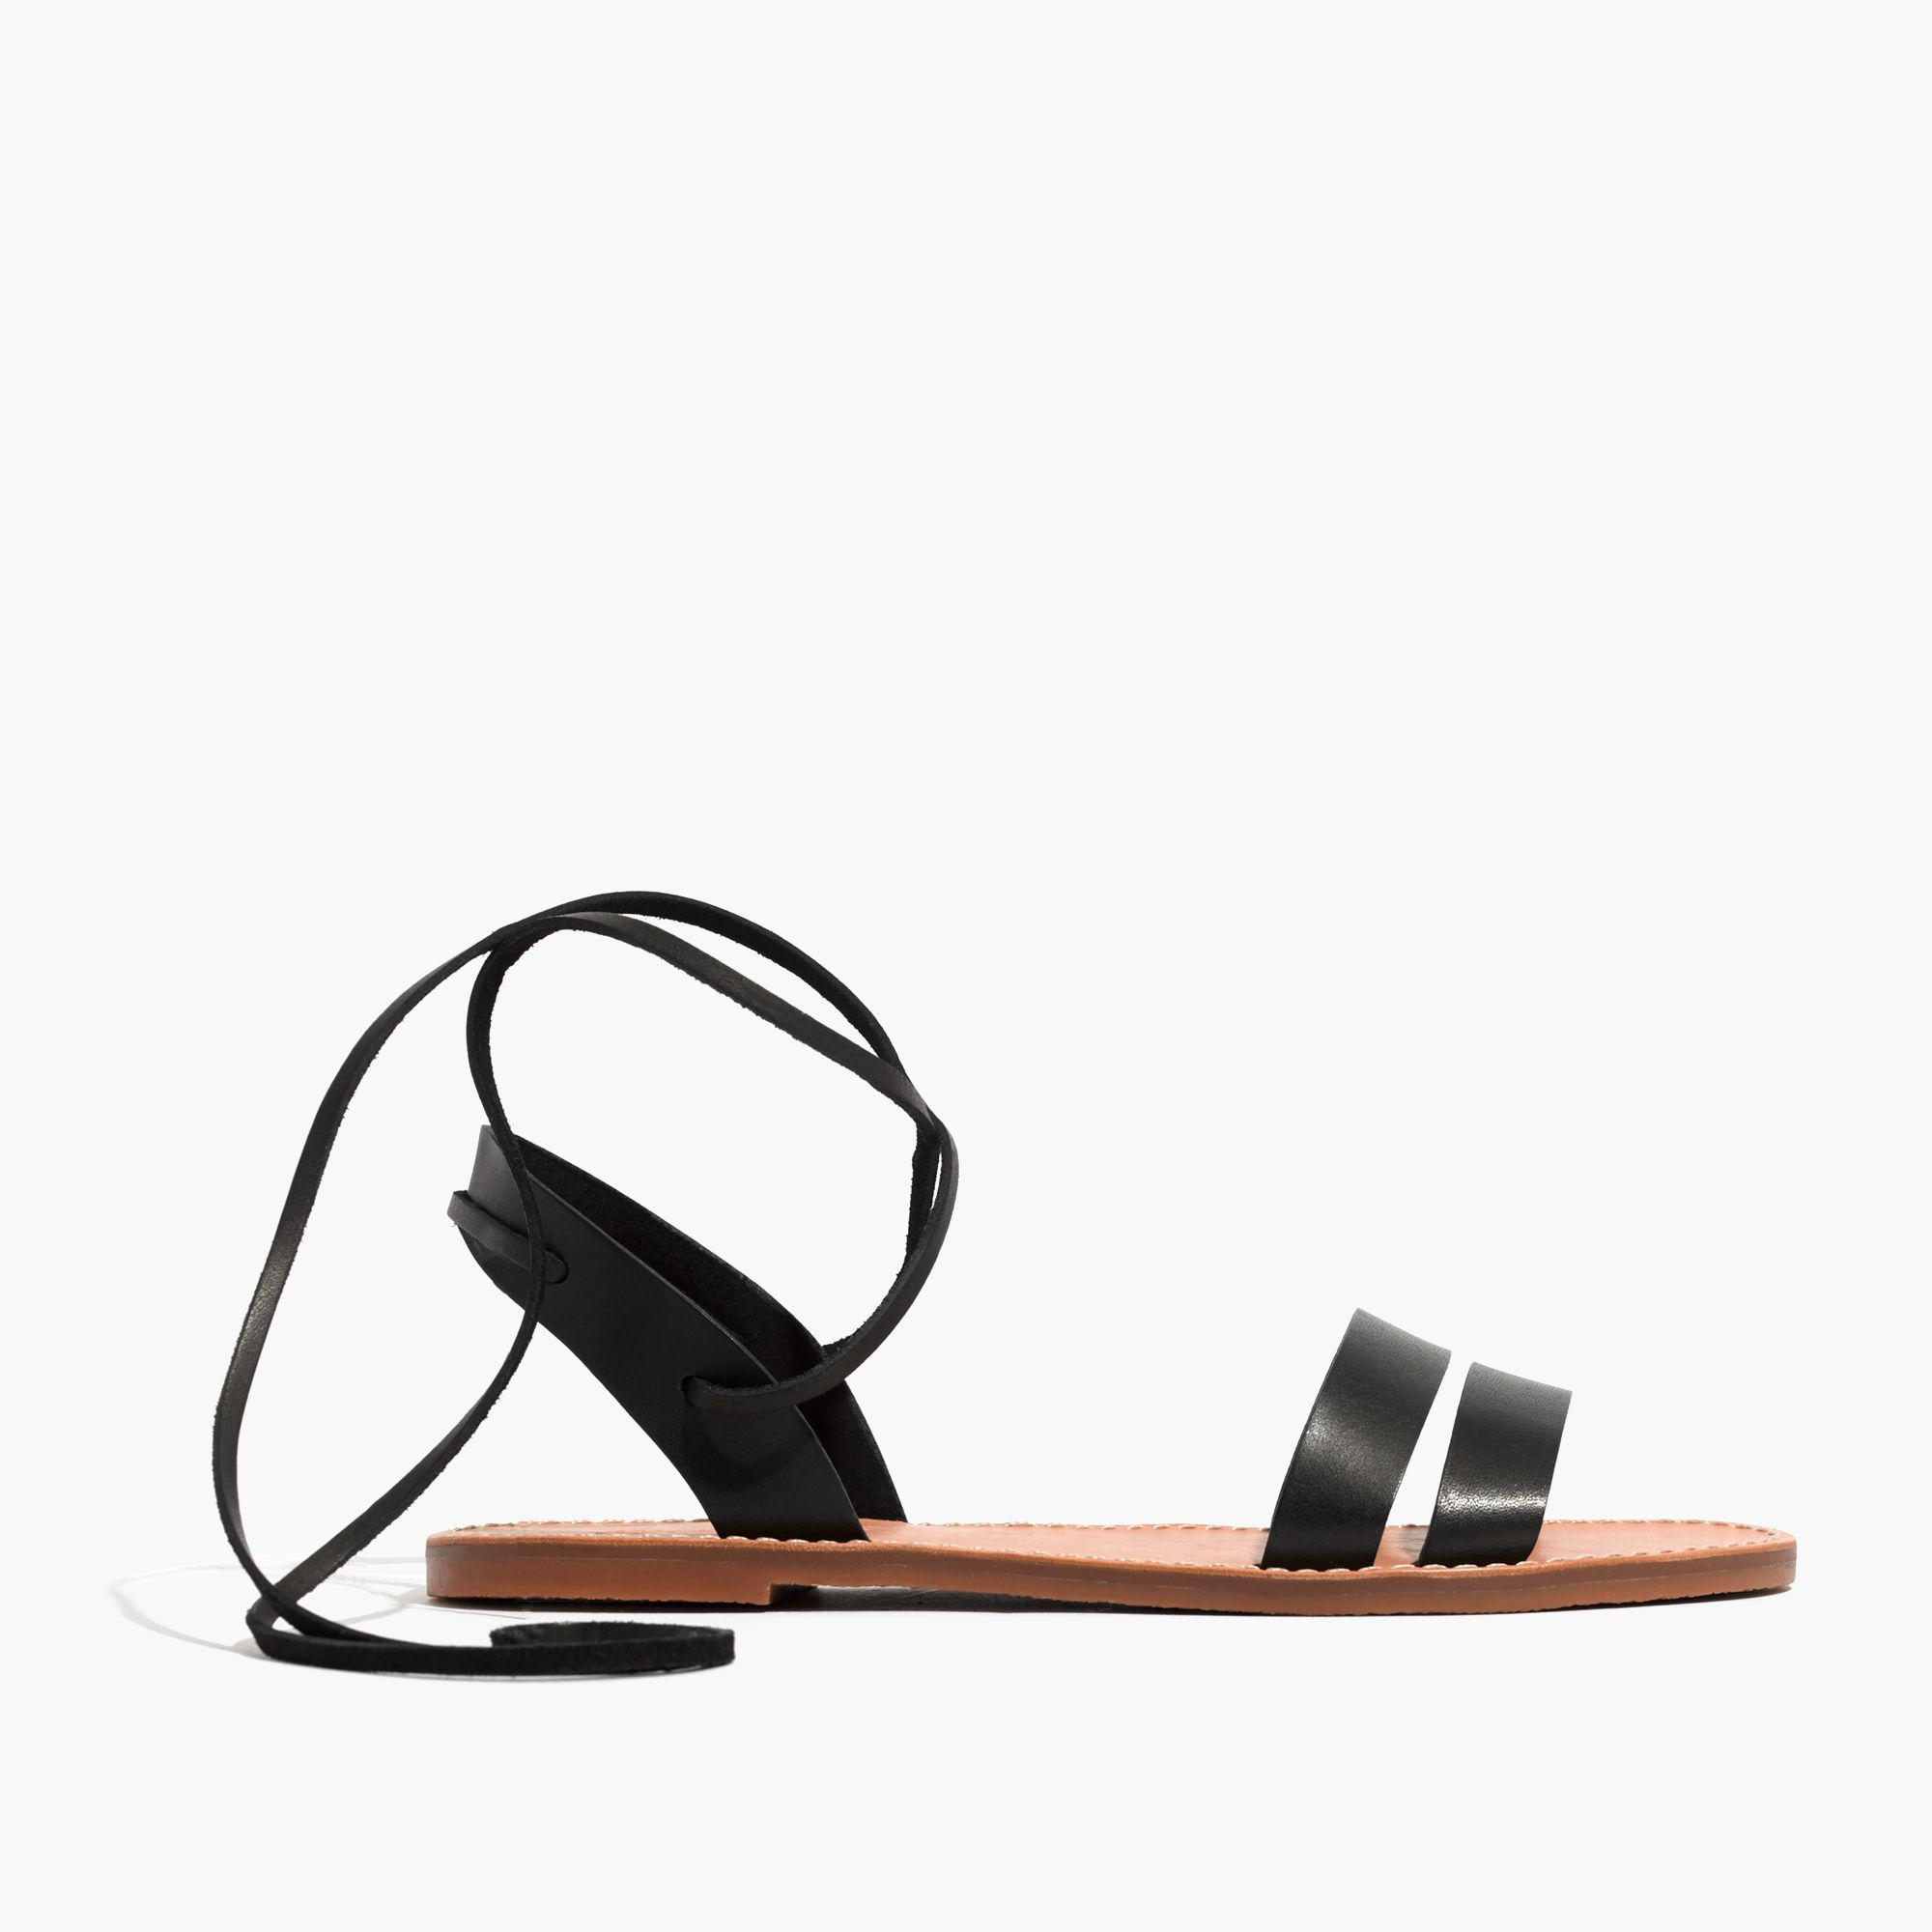 e64fea55235517 Lyst - Madewell The Boardwalk Ankle-tie Sandal in Black